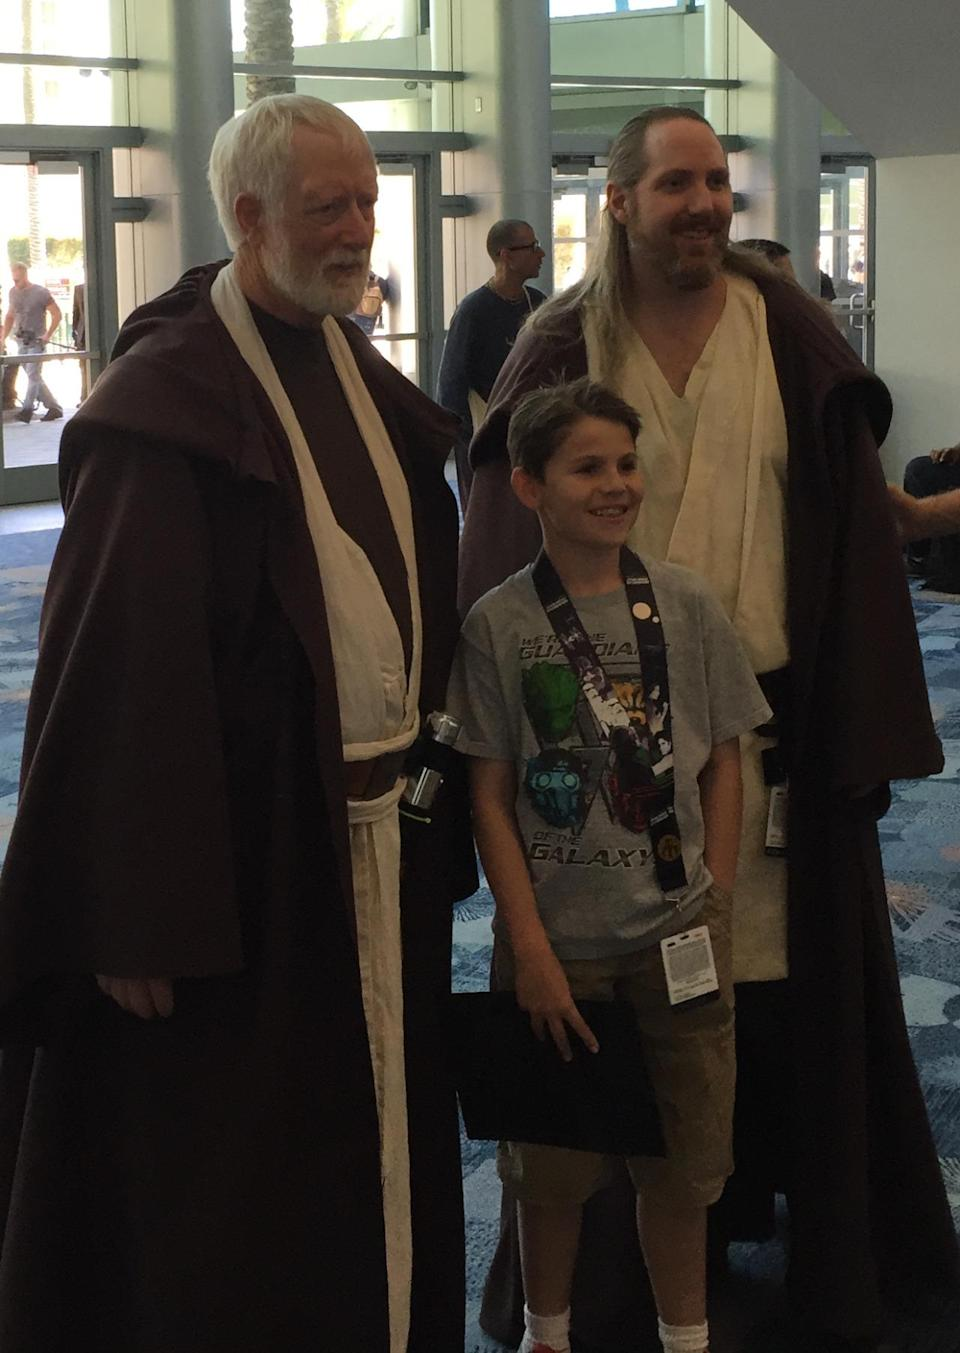 These Jedi Masters are always ready for a photo opp with a potential Padawan.